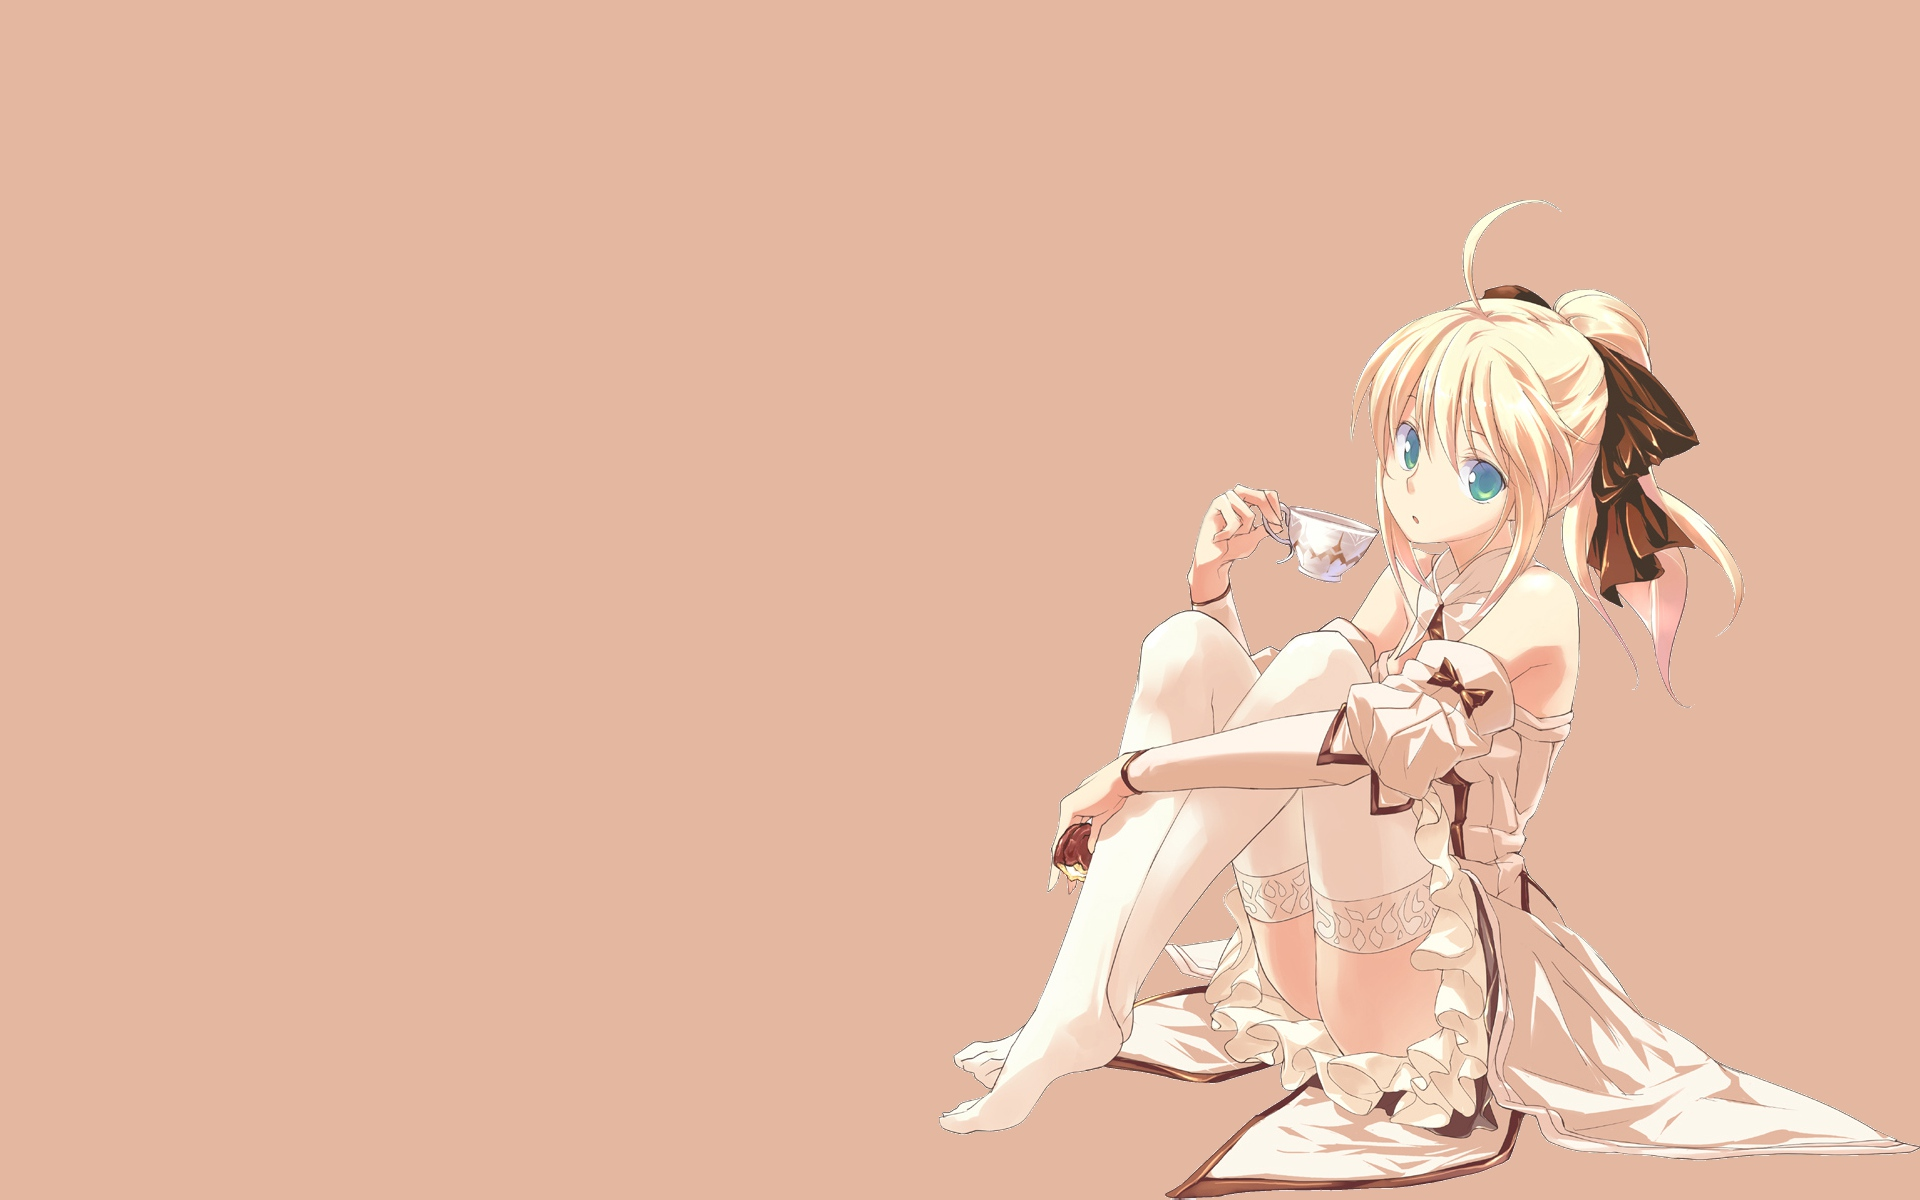 Saber Lily   Fate Stay Night Wallpaper 24684652 1920x1200